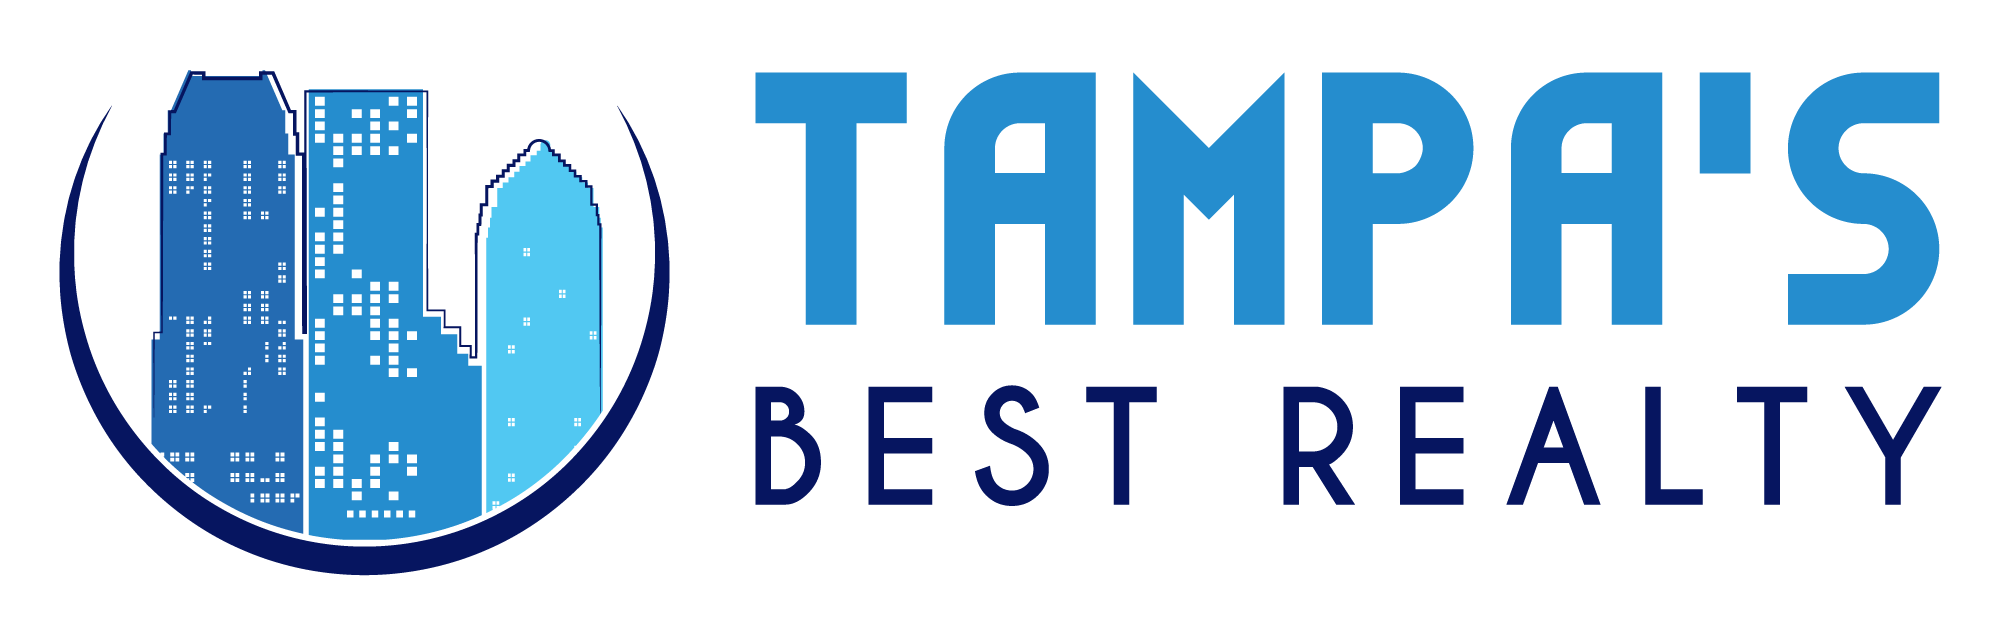 Tampa's Best Realty logo